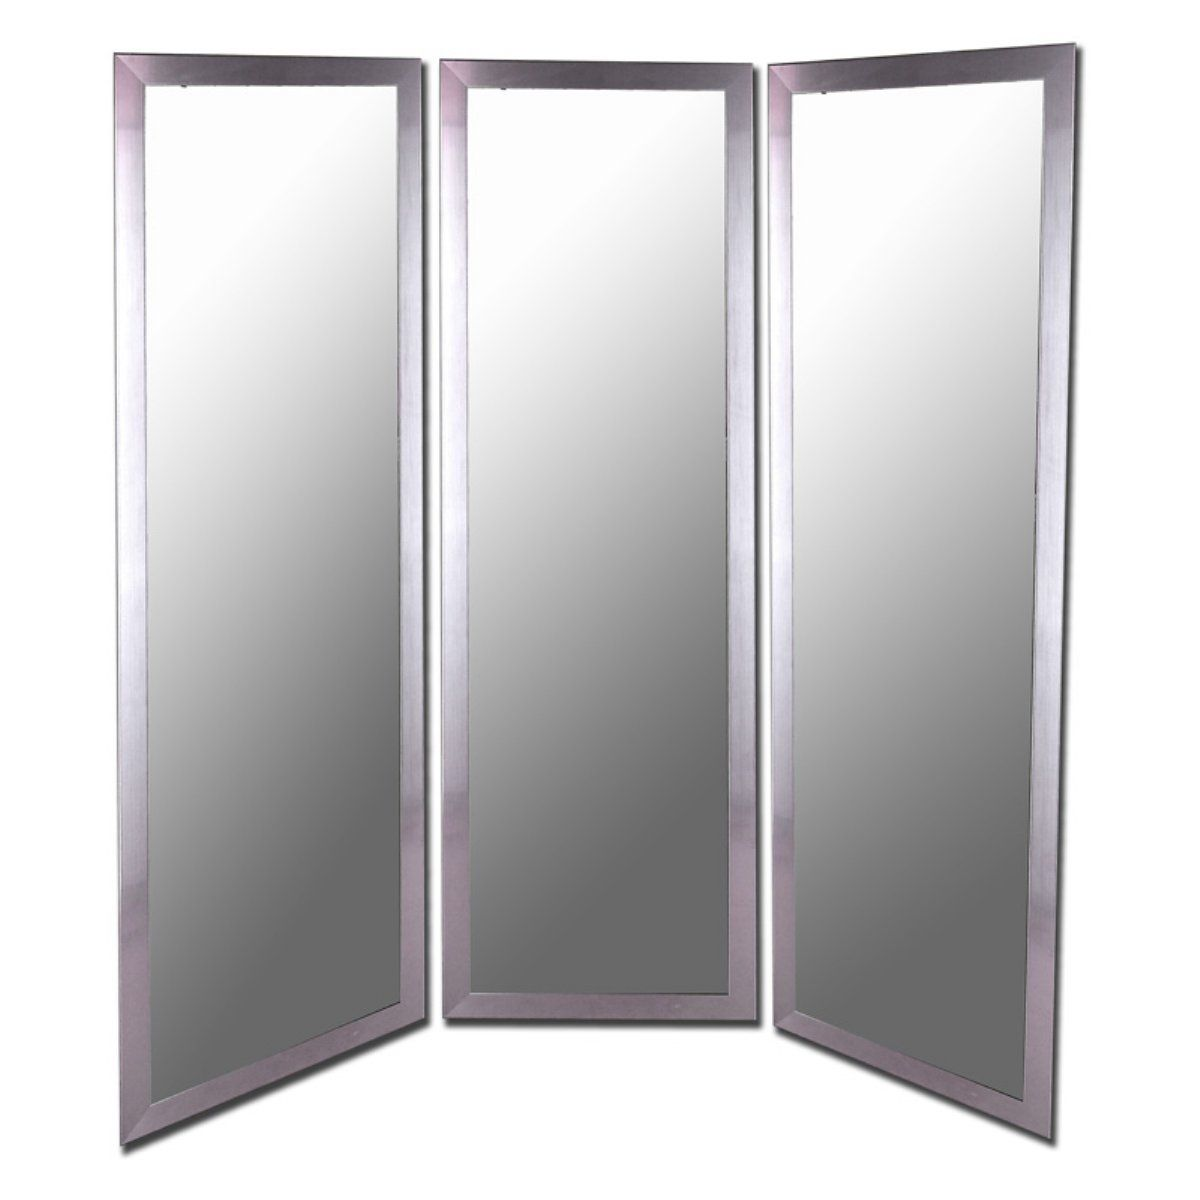 Tri Fold Mirrors To Be Used During The Auditions And Rehearsals Mirror Wall Trifold Mirror Wall Paneling